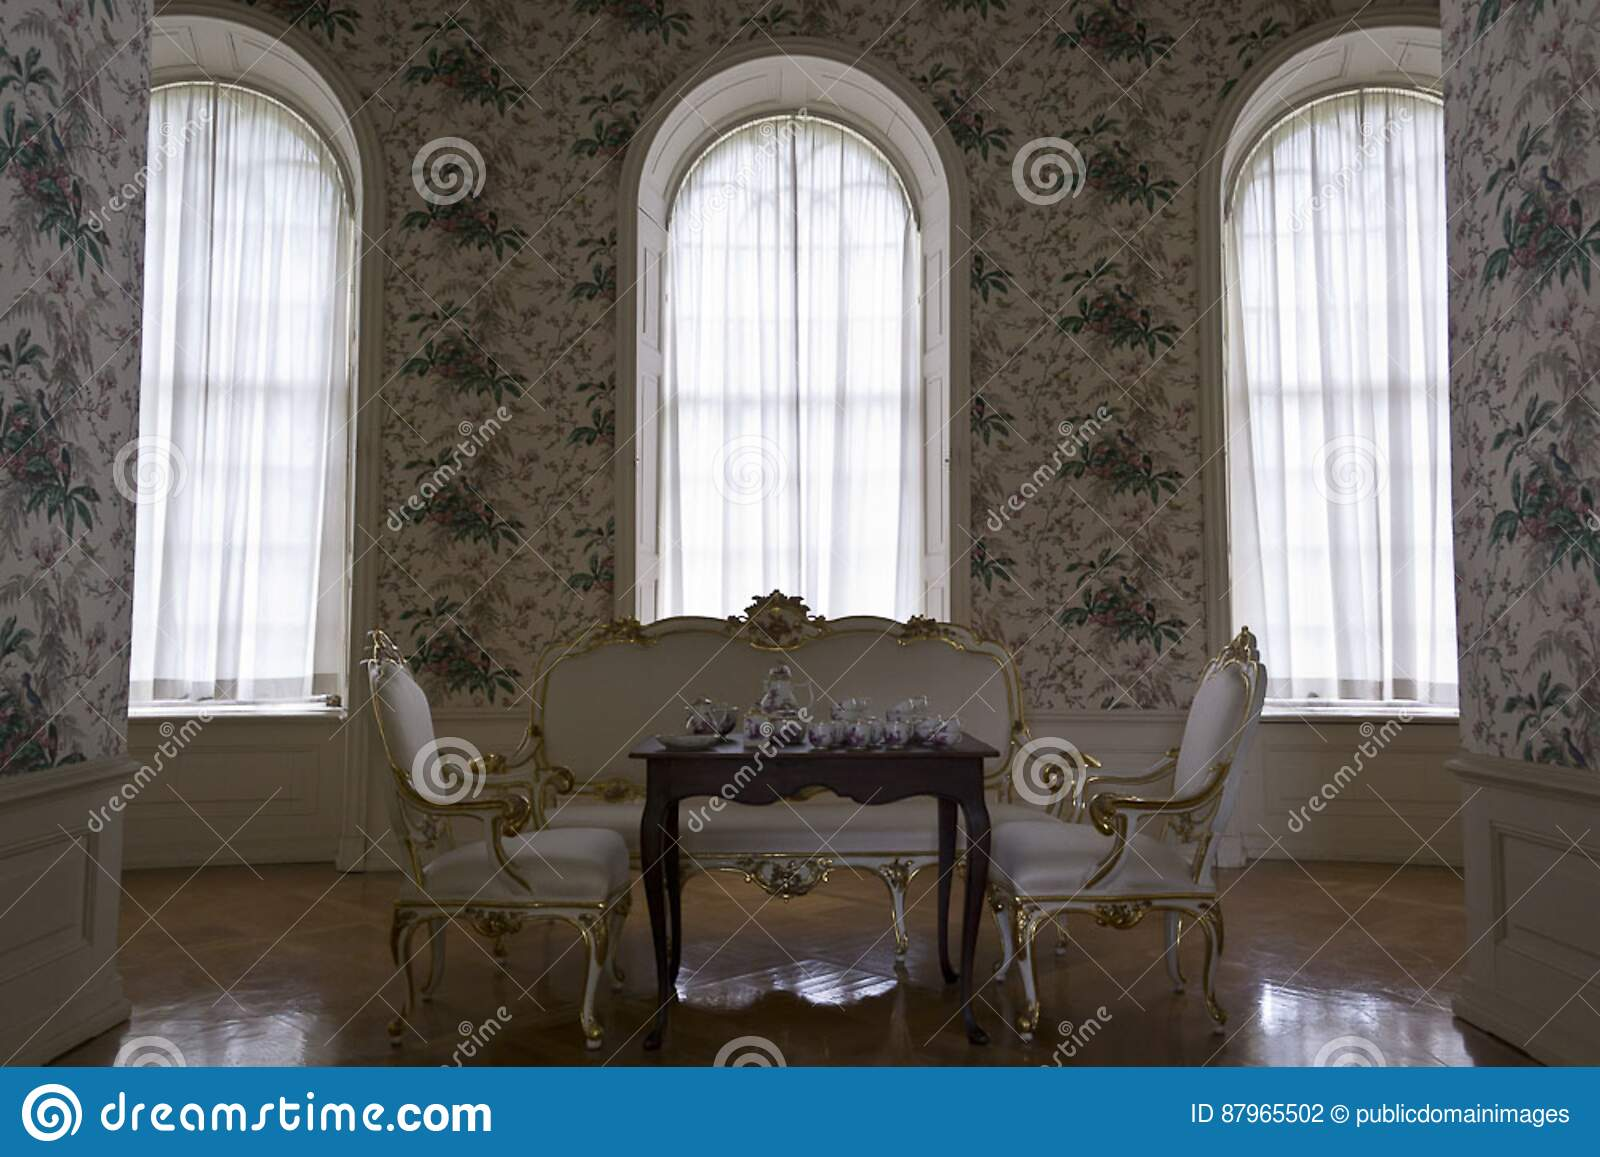 Admirable Rococo Style Room Picture Image 87965502 Best Image Libraries Weasiibadanjobscom